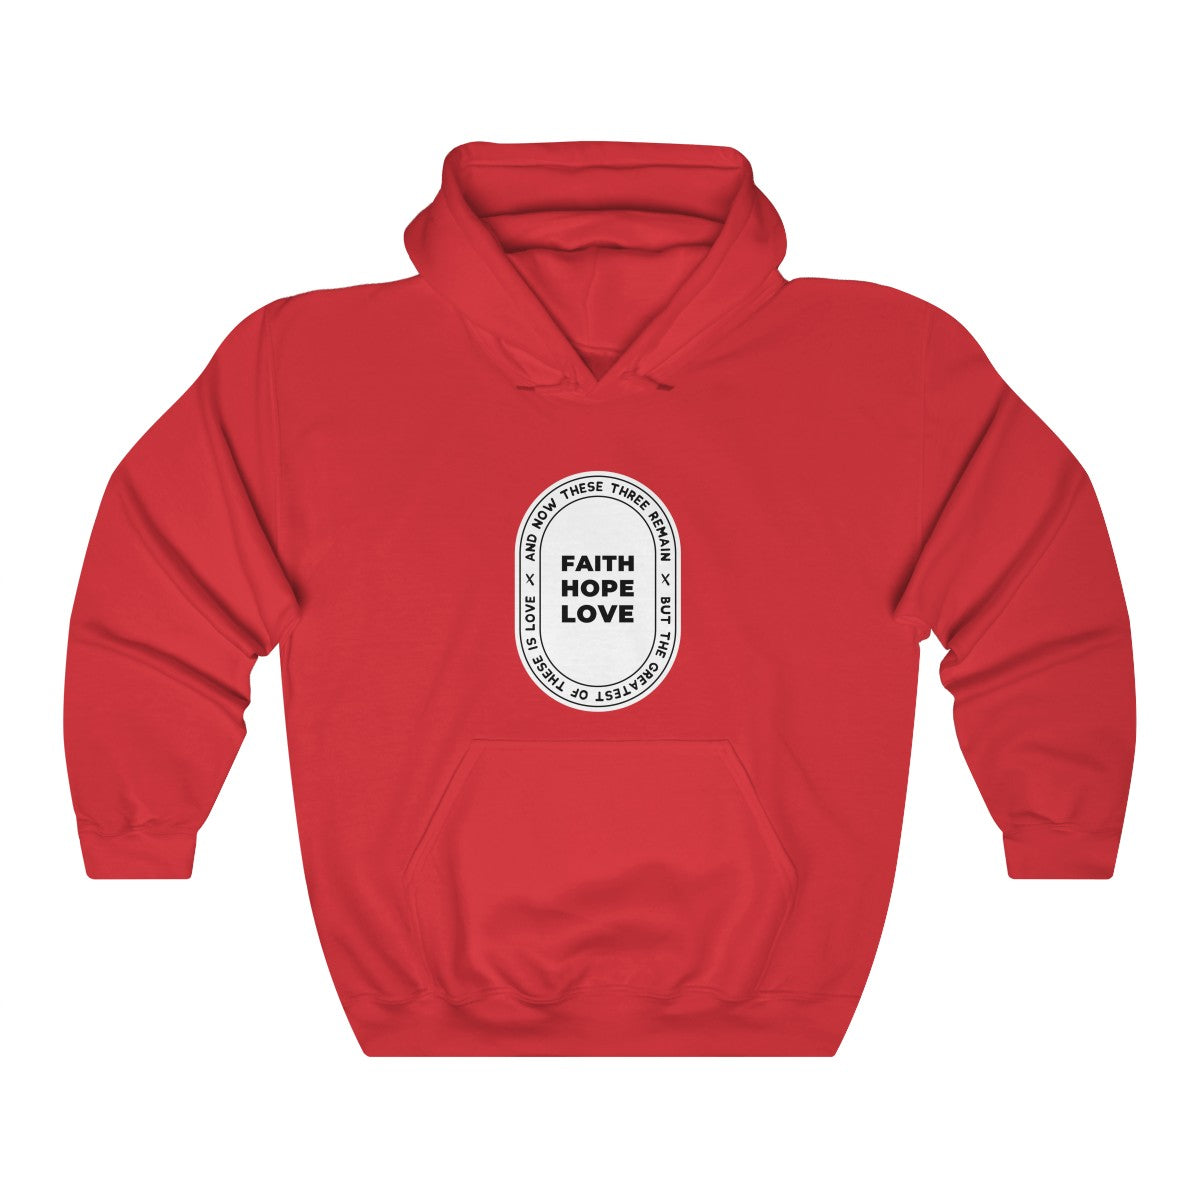 The Big 3 Unisex Heavy Blend™ Hooded Sweatshirt